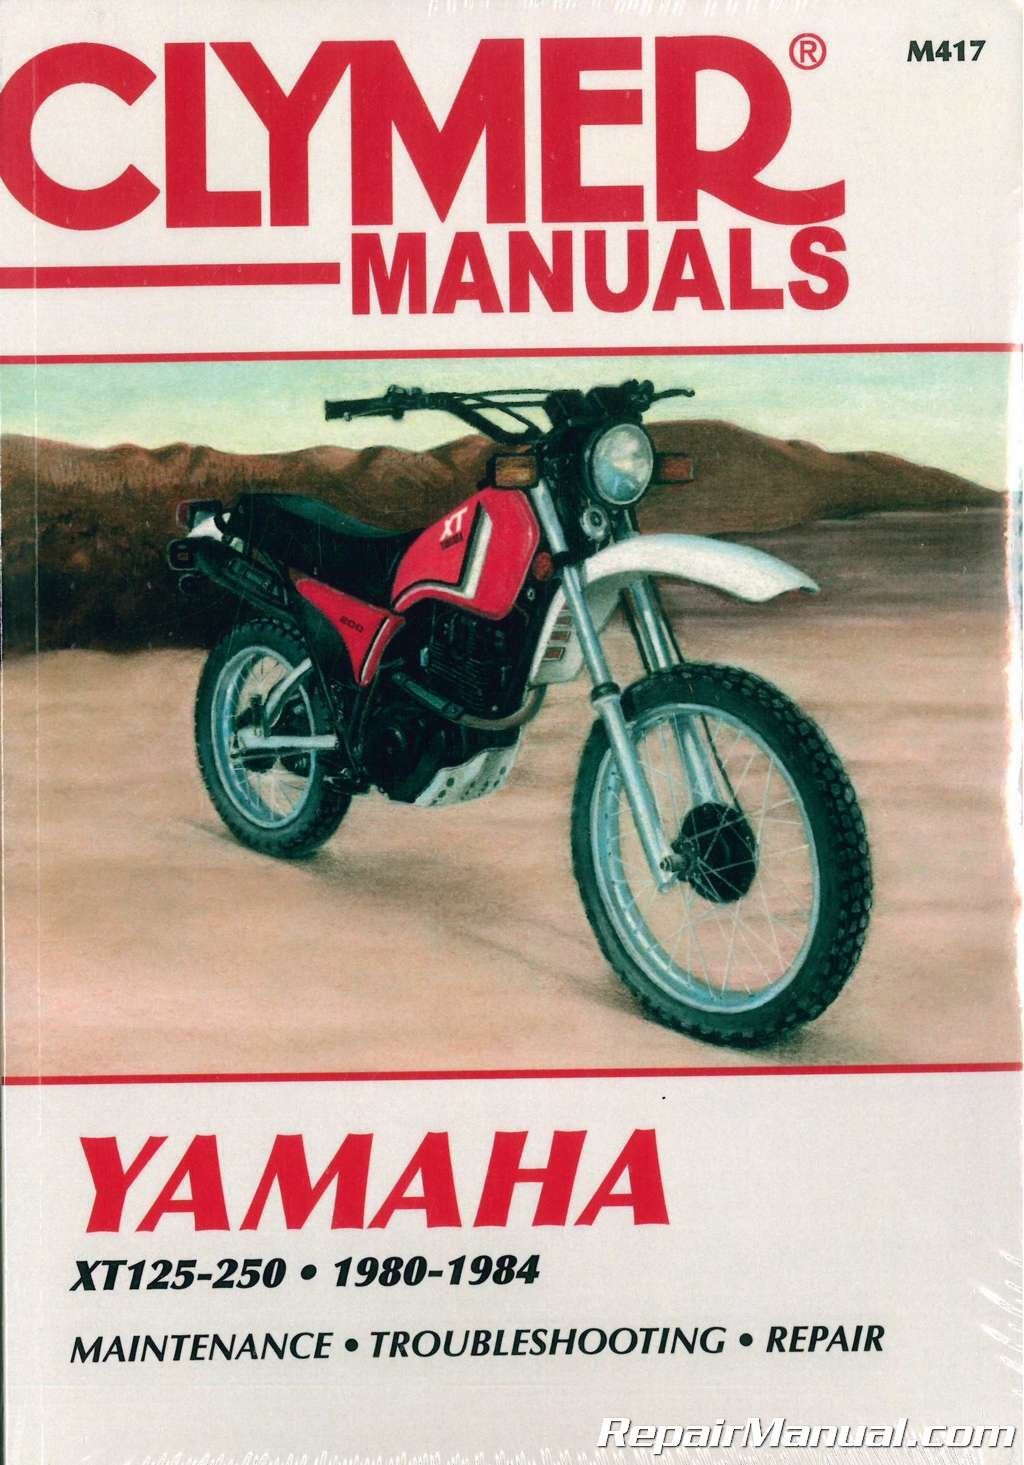 82 Yamaha Xt 200 Wiring Diagram All Kind Of Diagrams Dual Sport Motorcycle M417 1980 1984 Xt125 Xt200 Xt250 Clymer Repair Rh Amazon Com